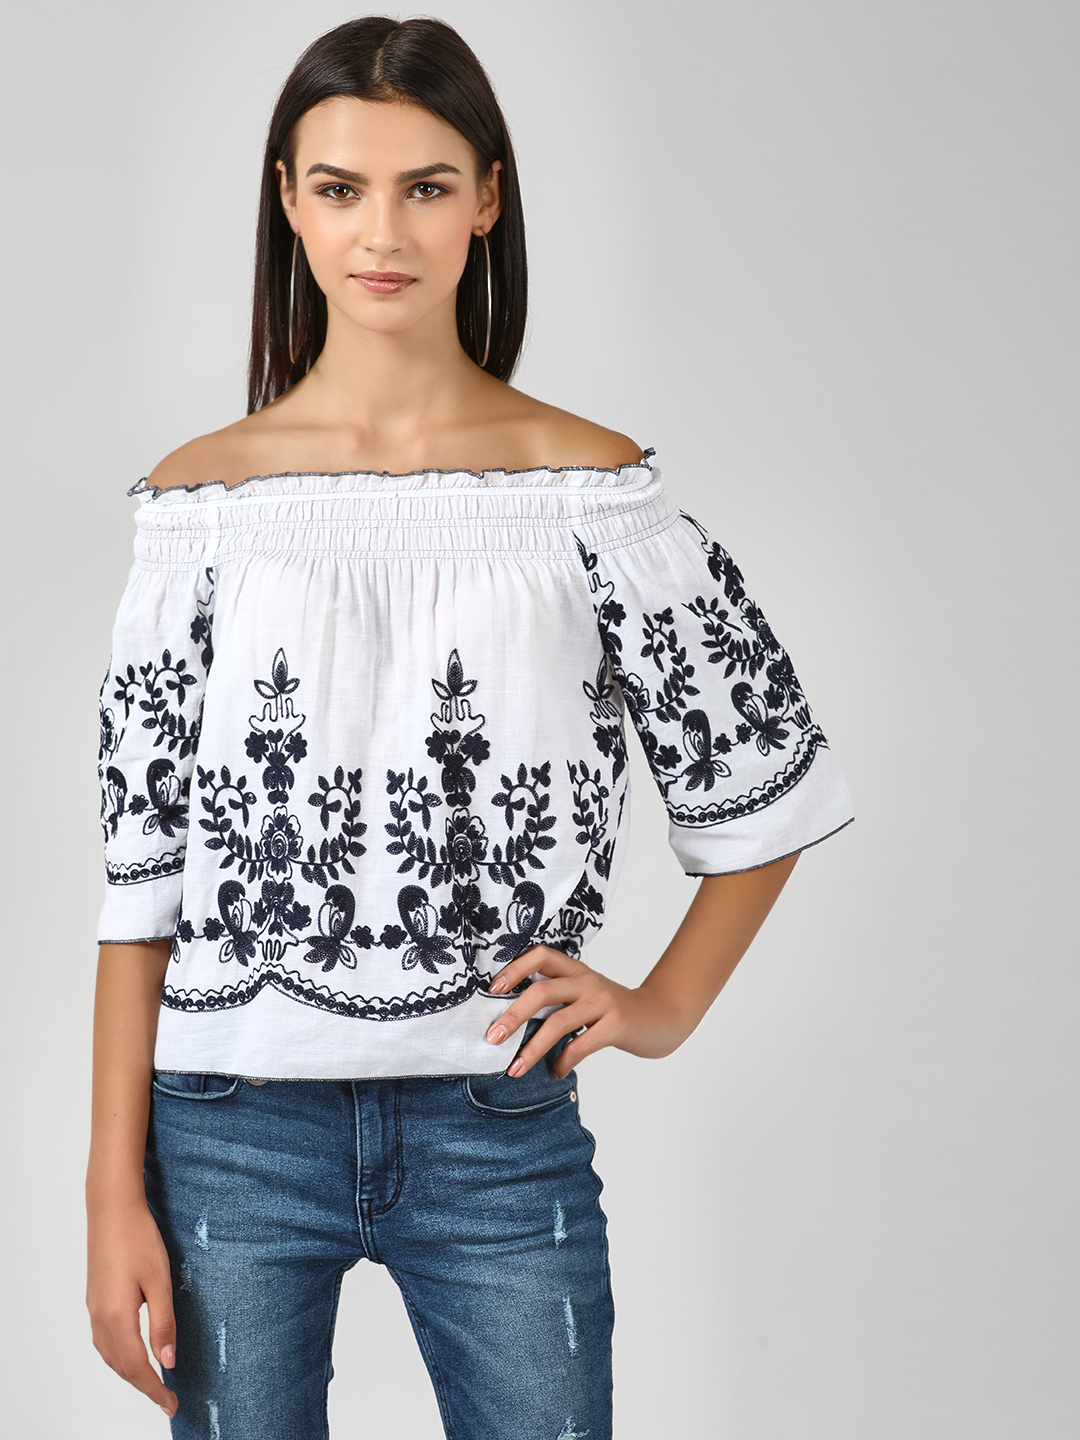 Kisscoast White Floral Embroidered Bandeau Top 1